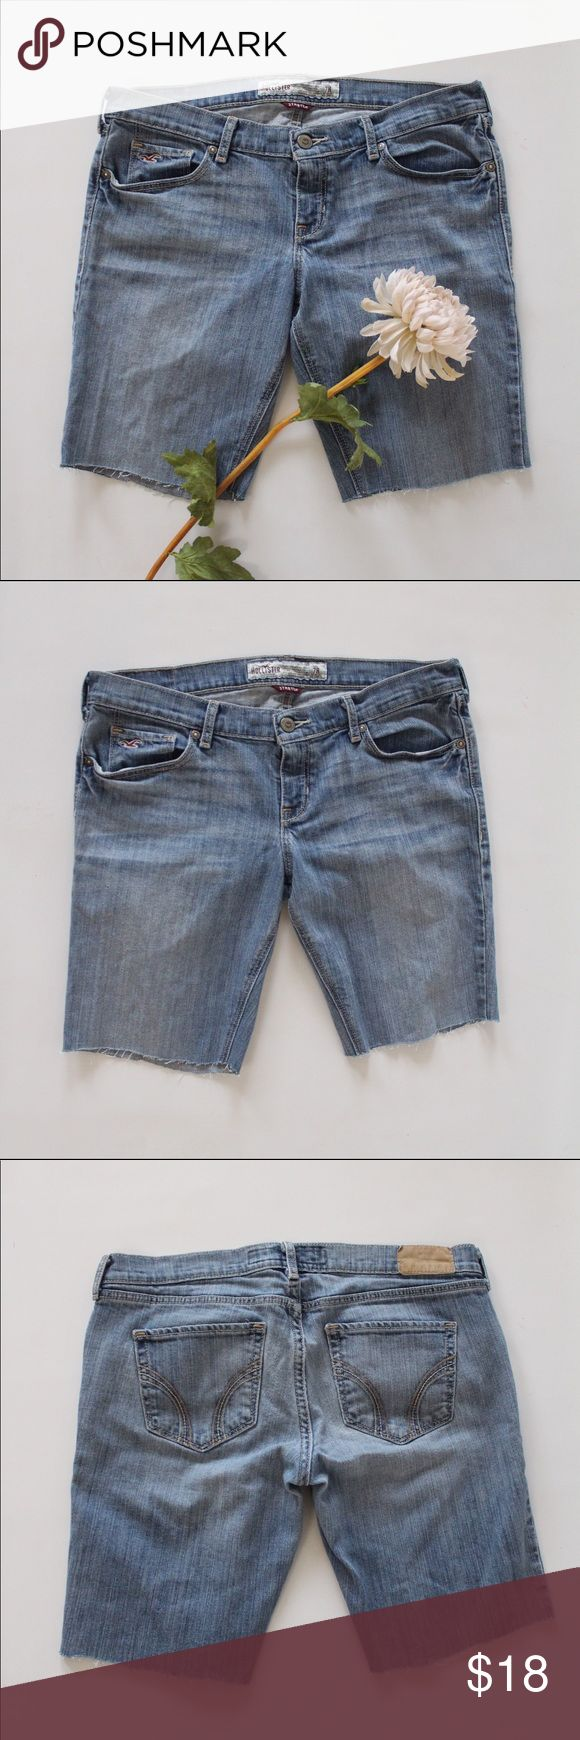 Hollister Denim Juniors Shorts Cute and comfy, durable denim by Hollister. Excellent condition. Size 7R. Hollister Shorts Jean Shorts